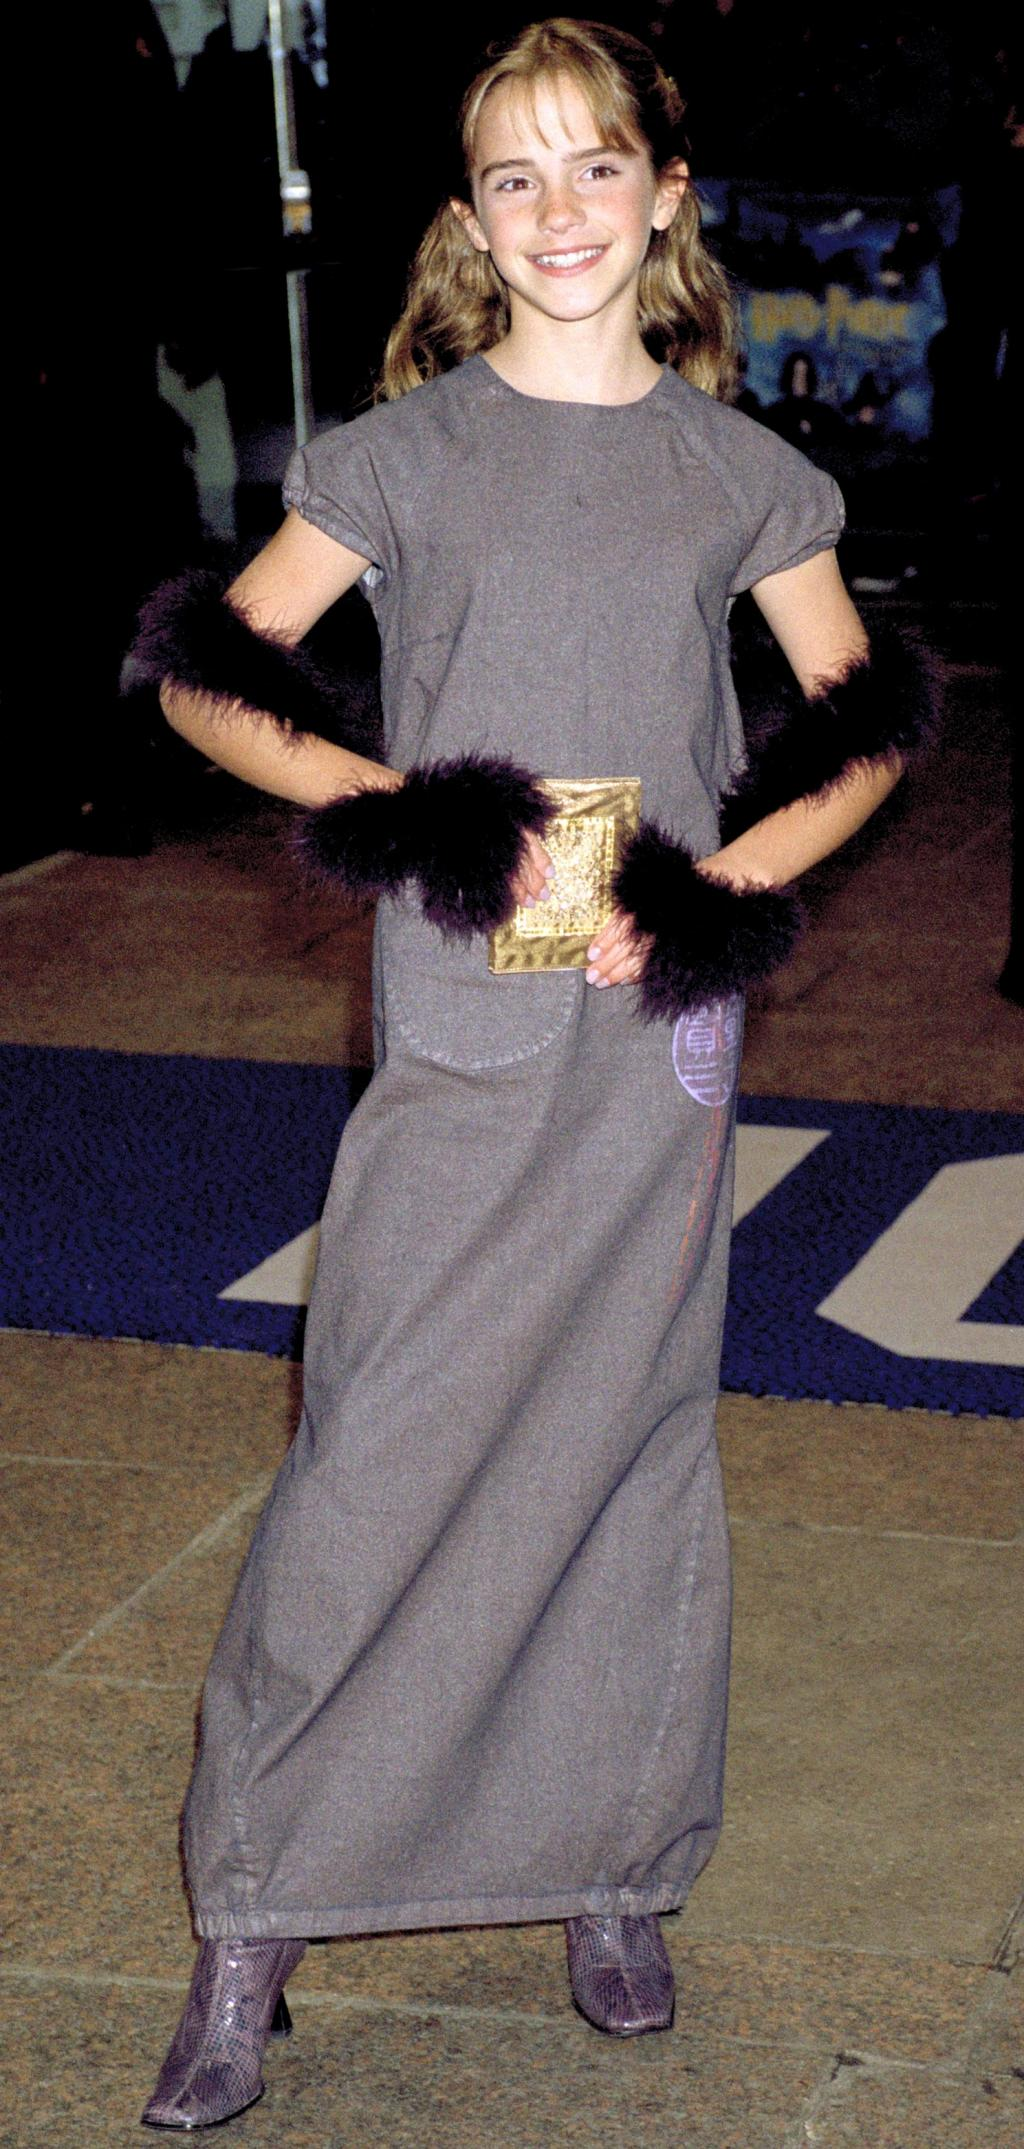 Emma Watson Cringes at Her First Movie Premiere Outfit from 2001:       'I Thought I Looked Amazing